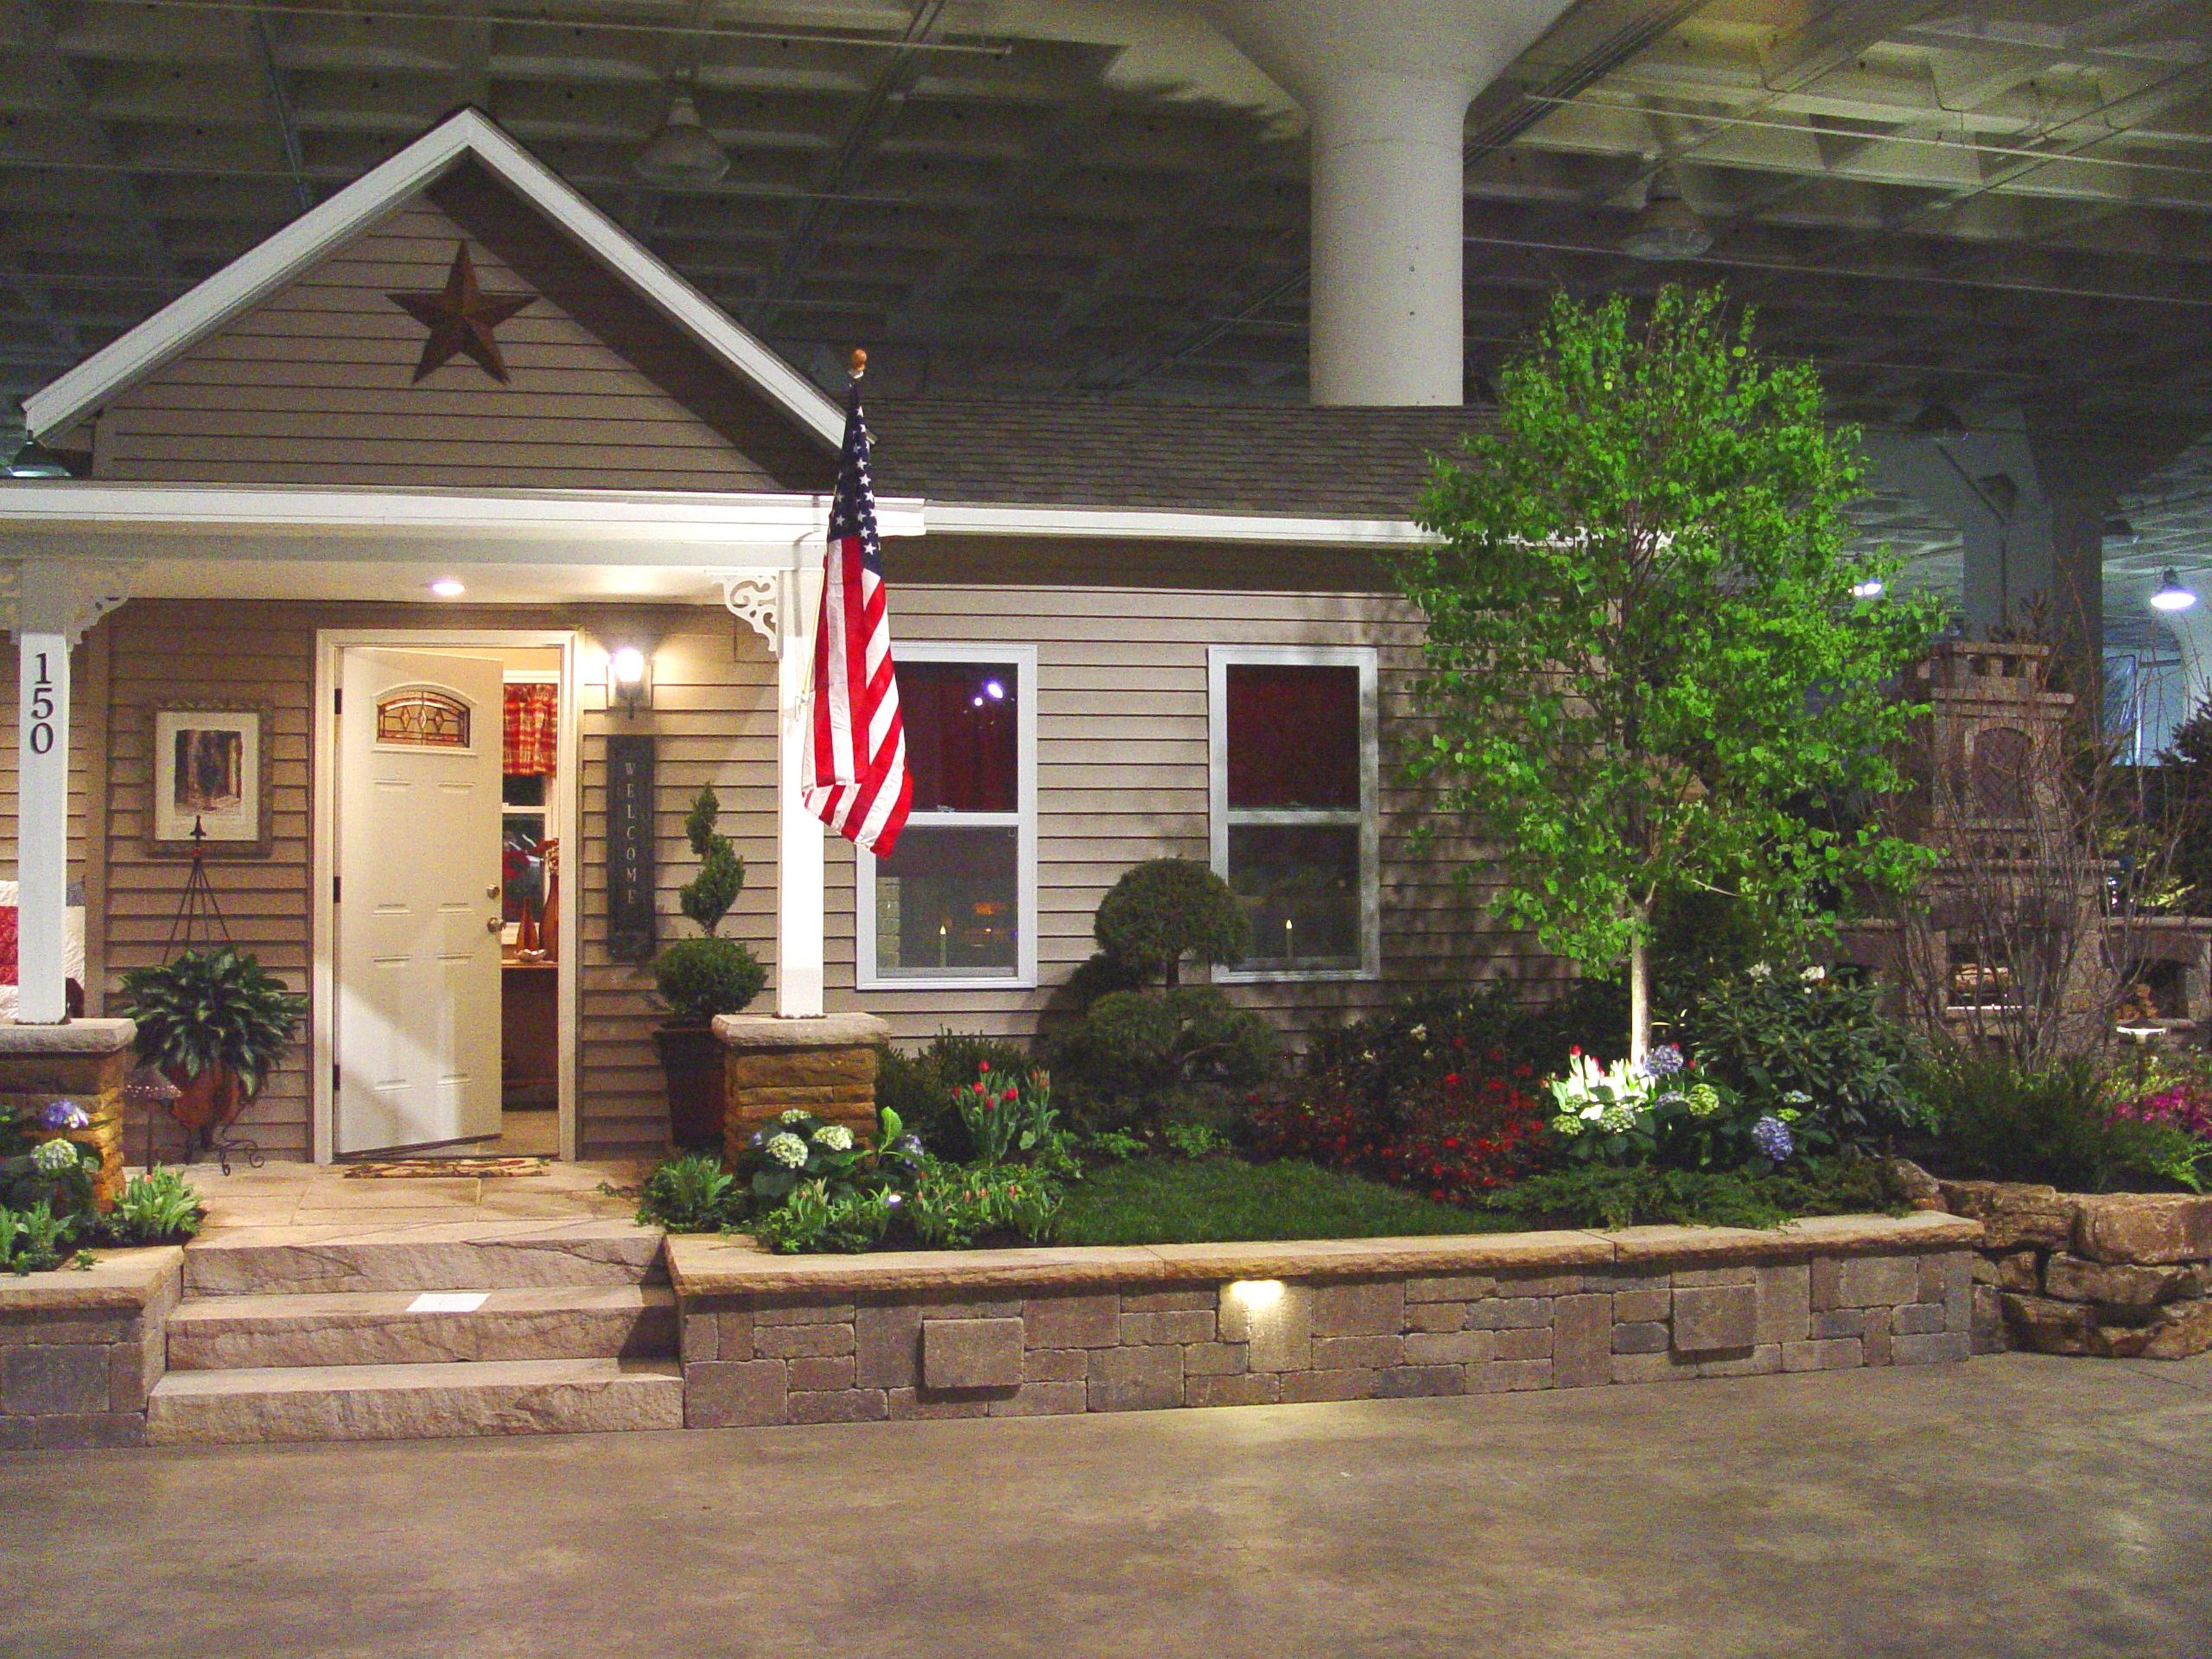 Cleveland Ohio's 2014 Great Big Home + Garden Show The